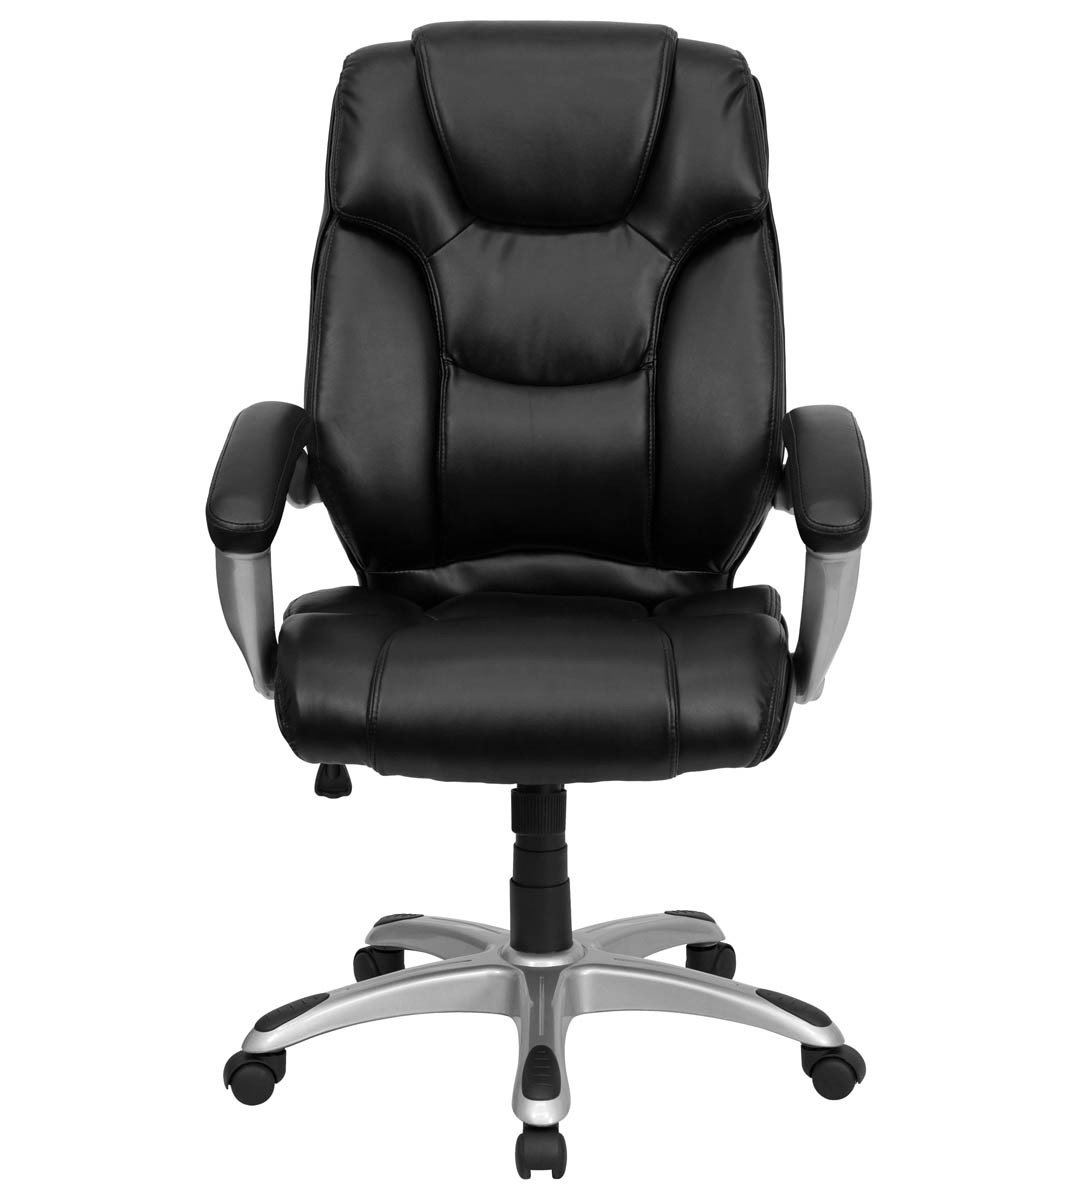 High Back Desk Chair High Back Black Leather Executive Office Chair Home